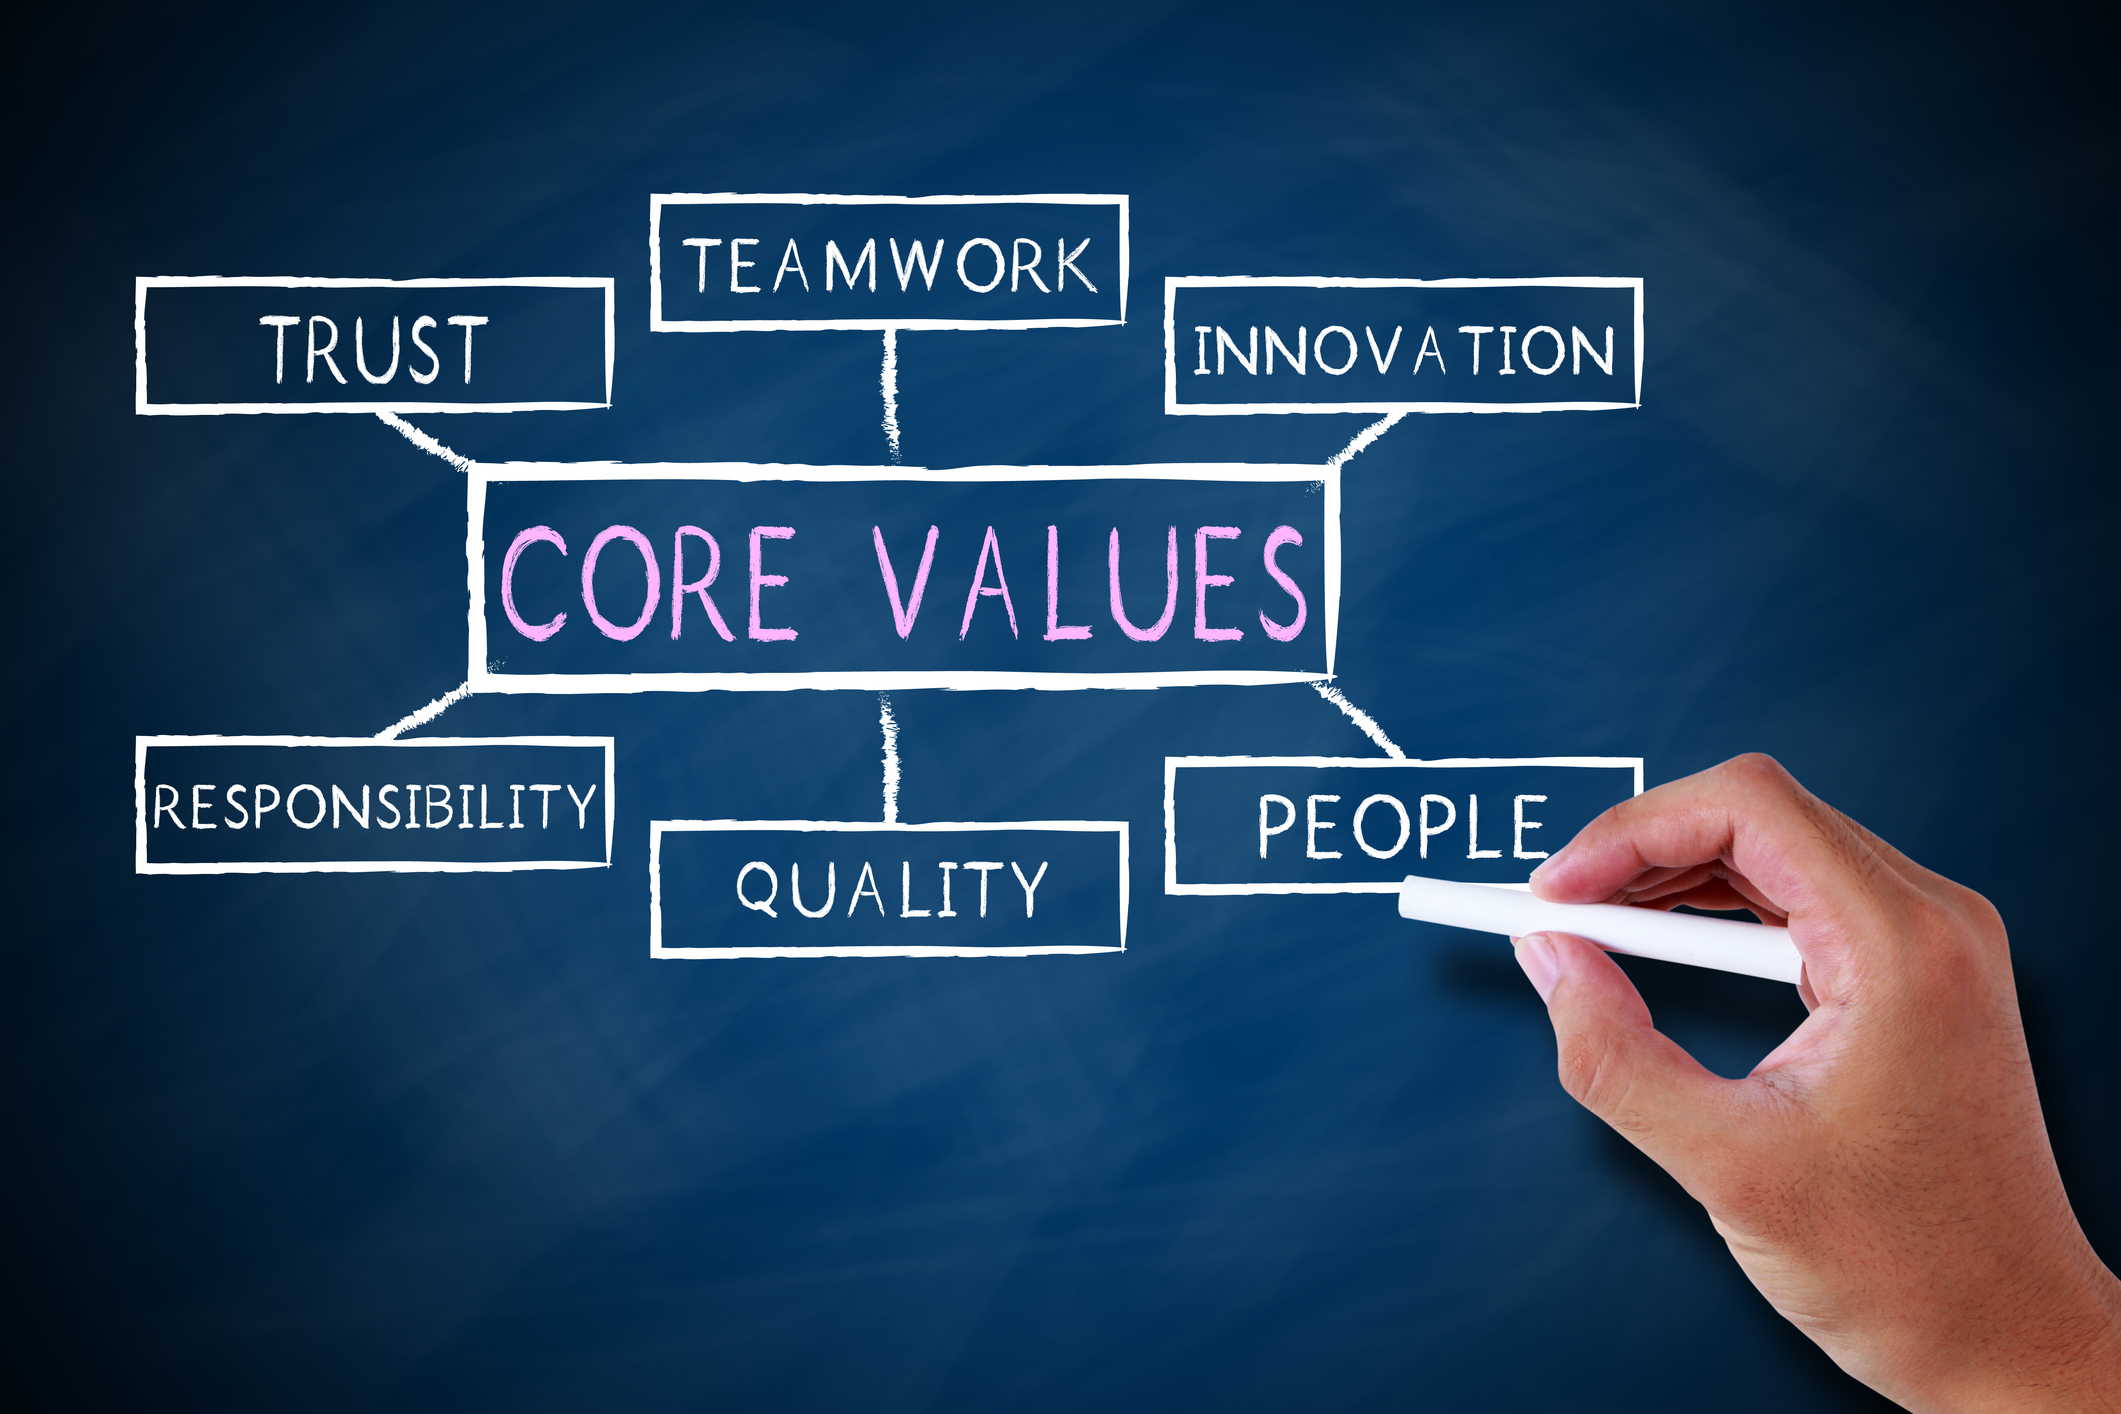 Project Scope & Value